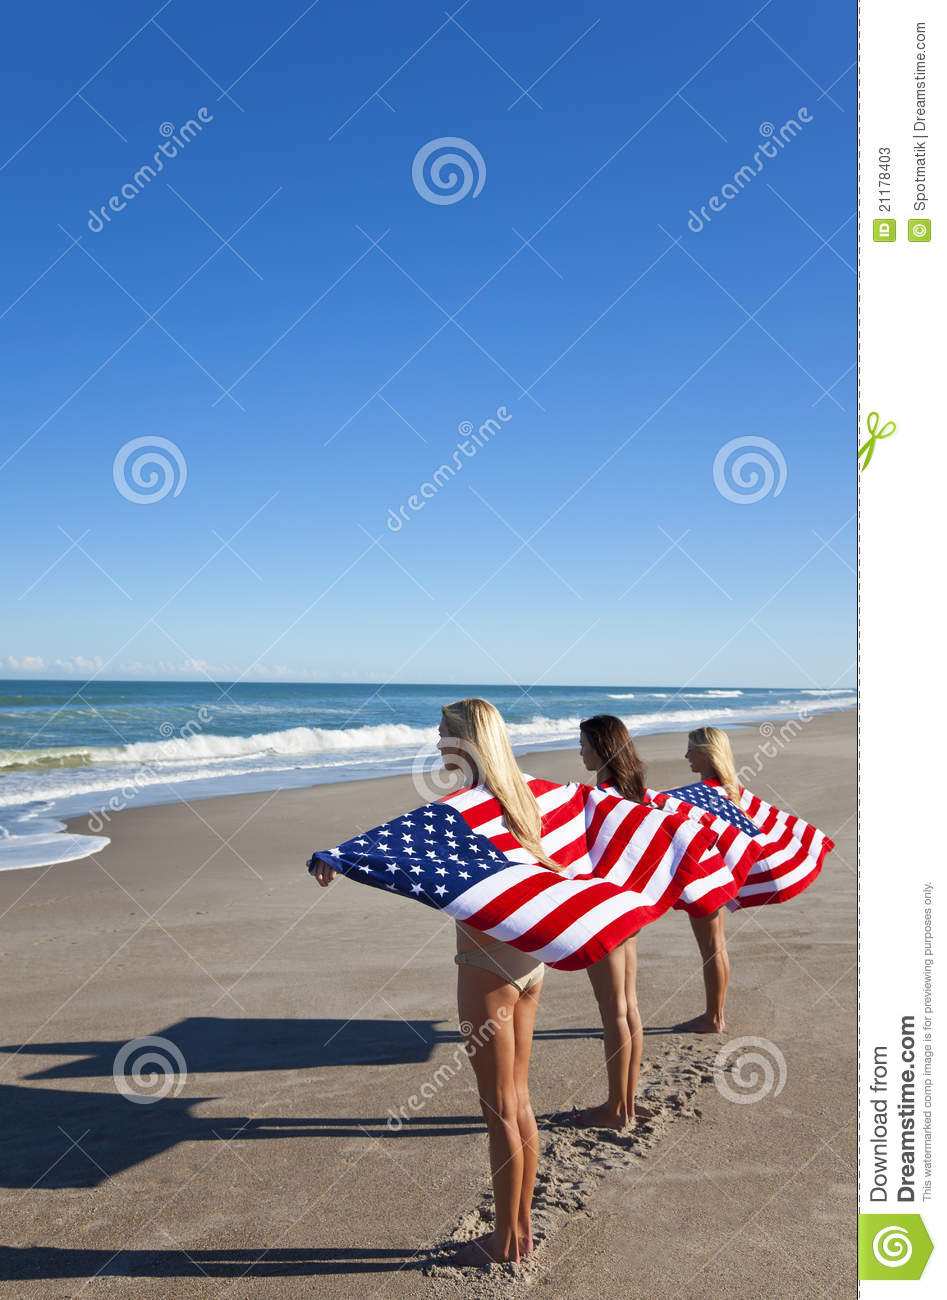 Young Women Wrapped in American Flags on a Beach